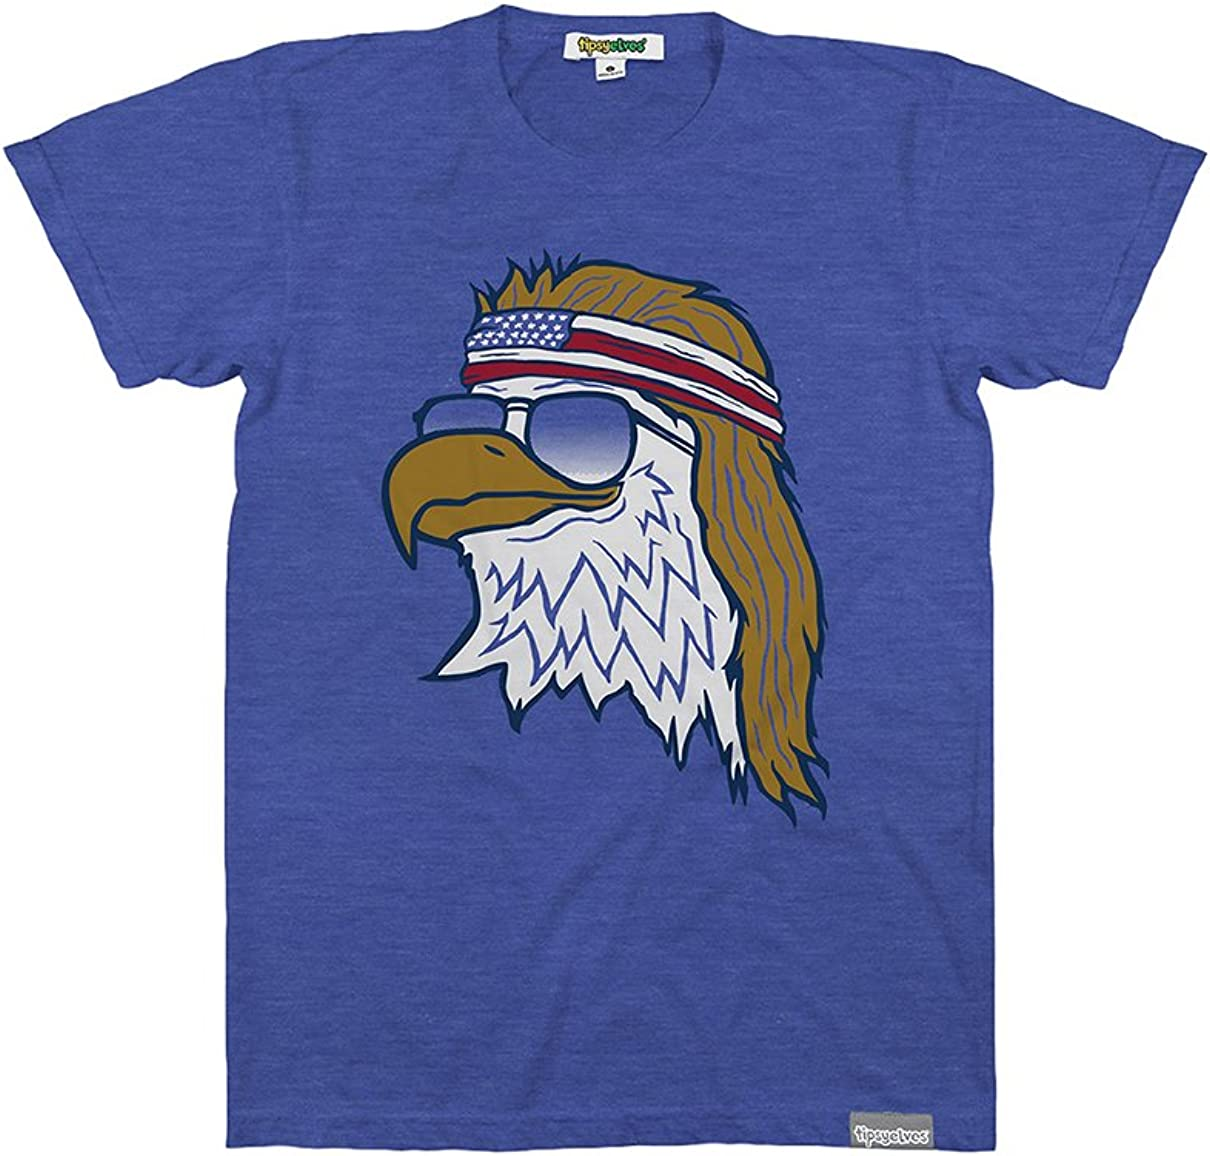 Funny Men's Animal Themed Patriotic Graphic Tees for 4th of July and Summer